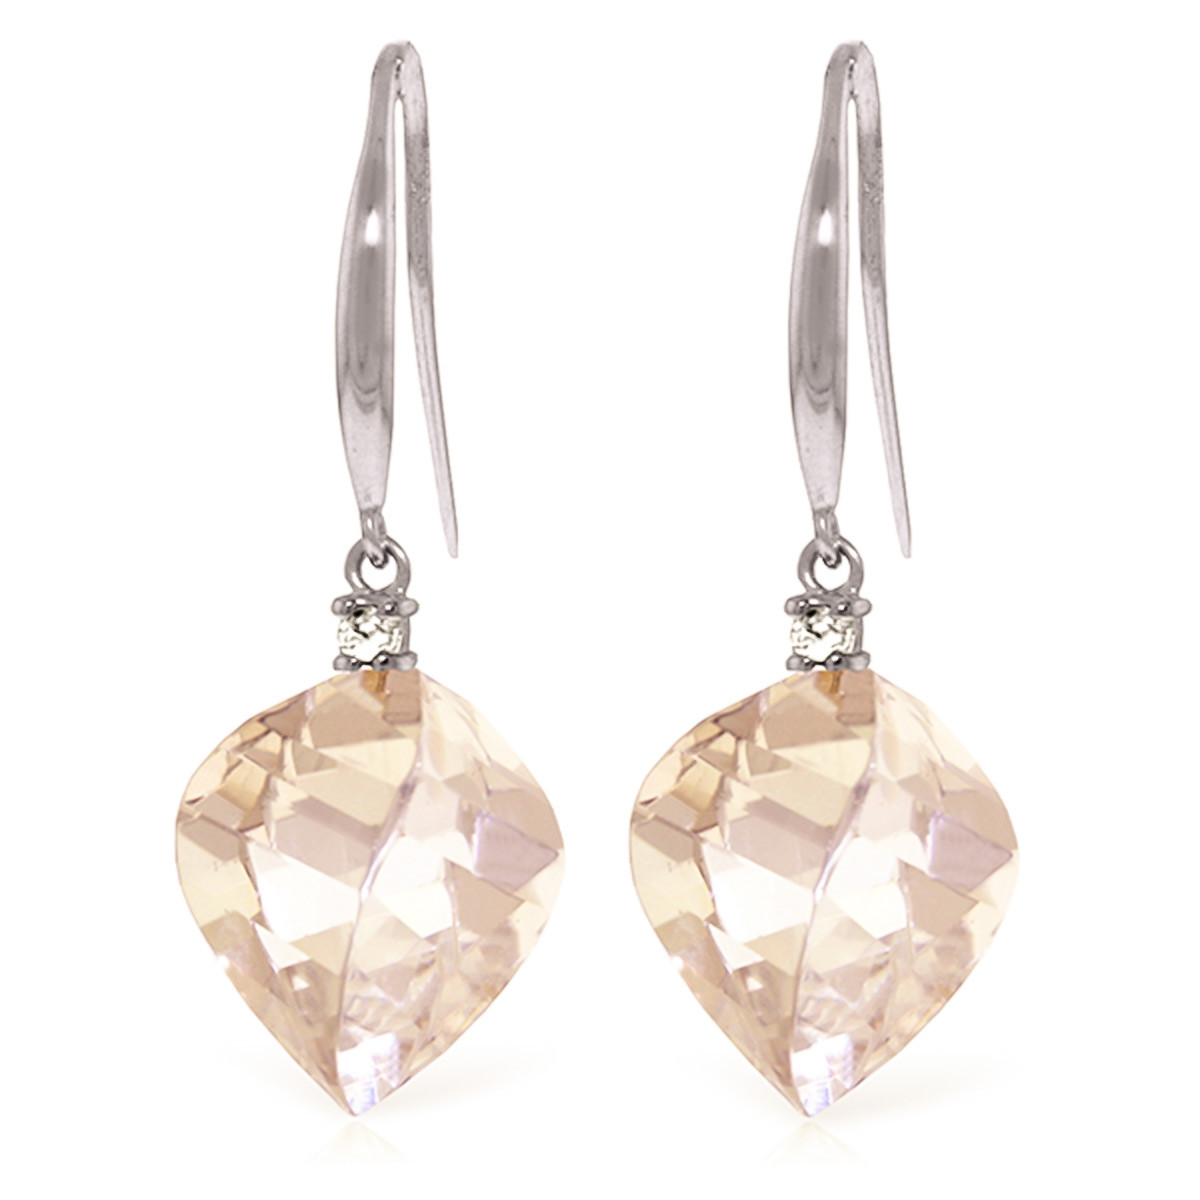 White Topaz Drop Earrings 25.7 ctw in 9ct White Gold